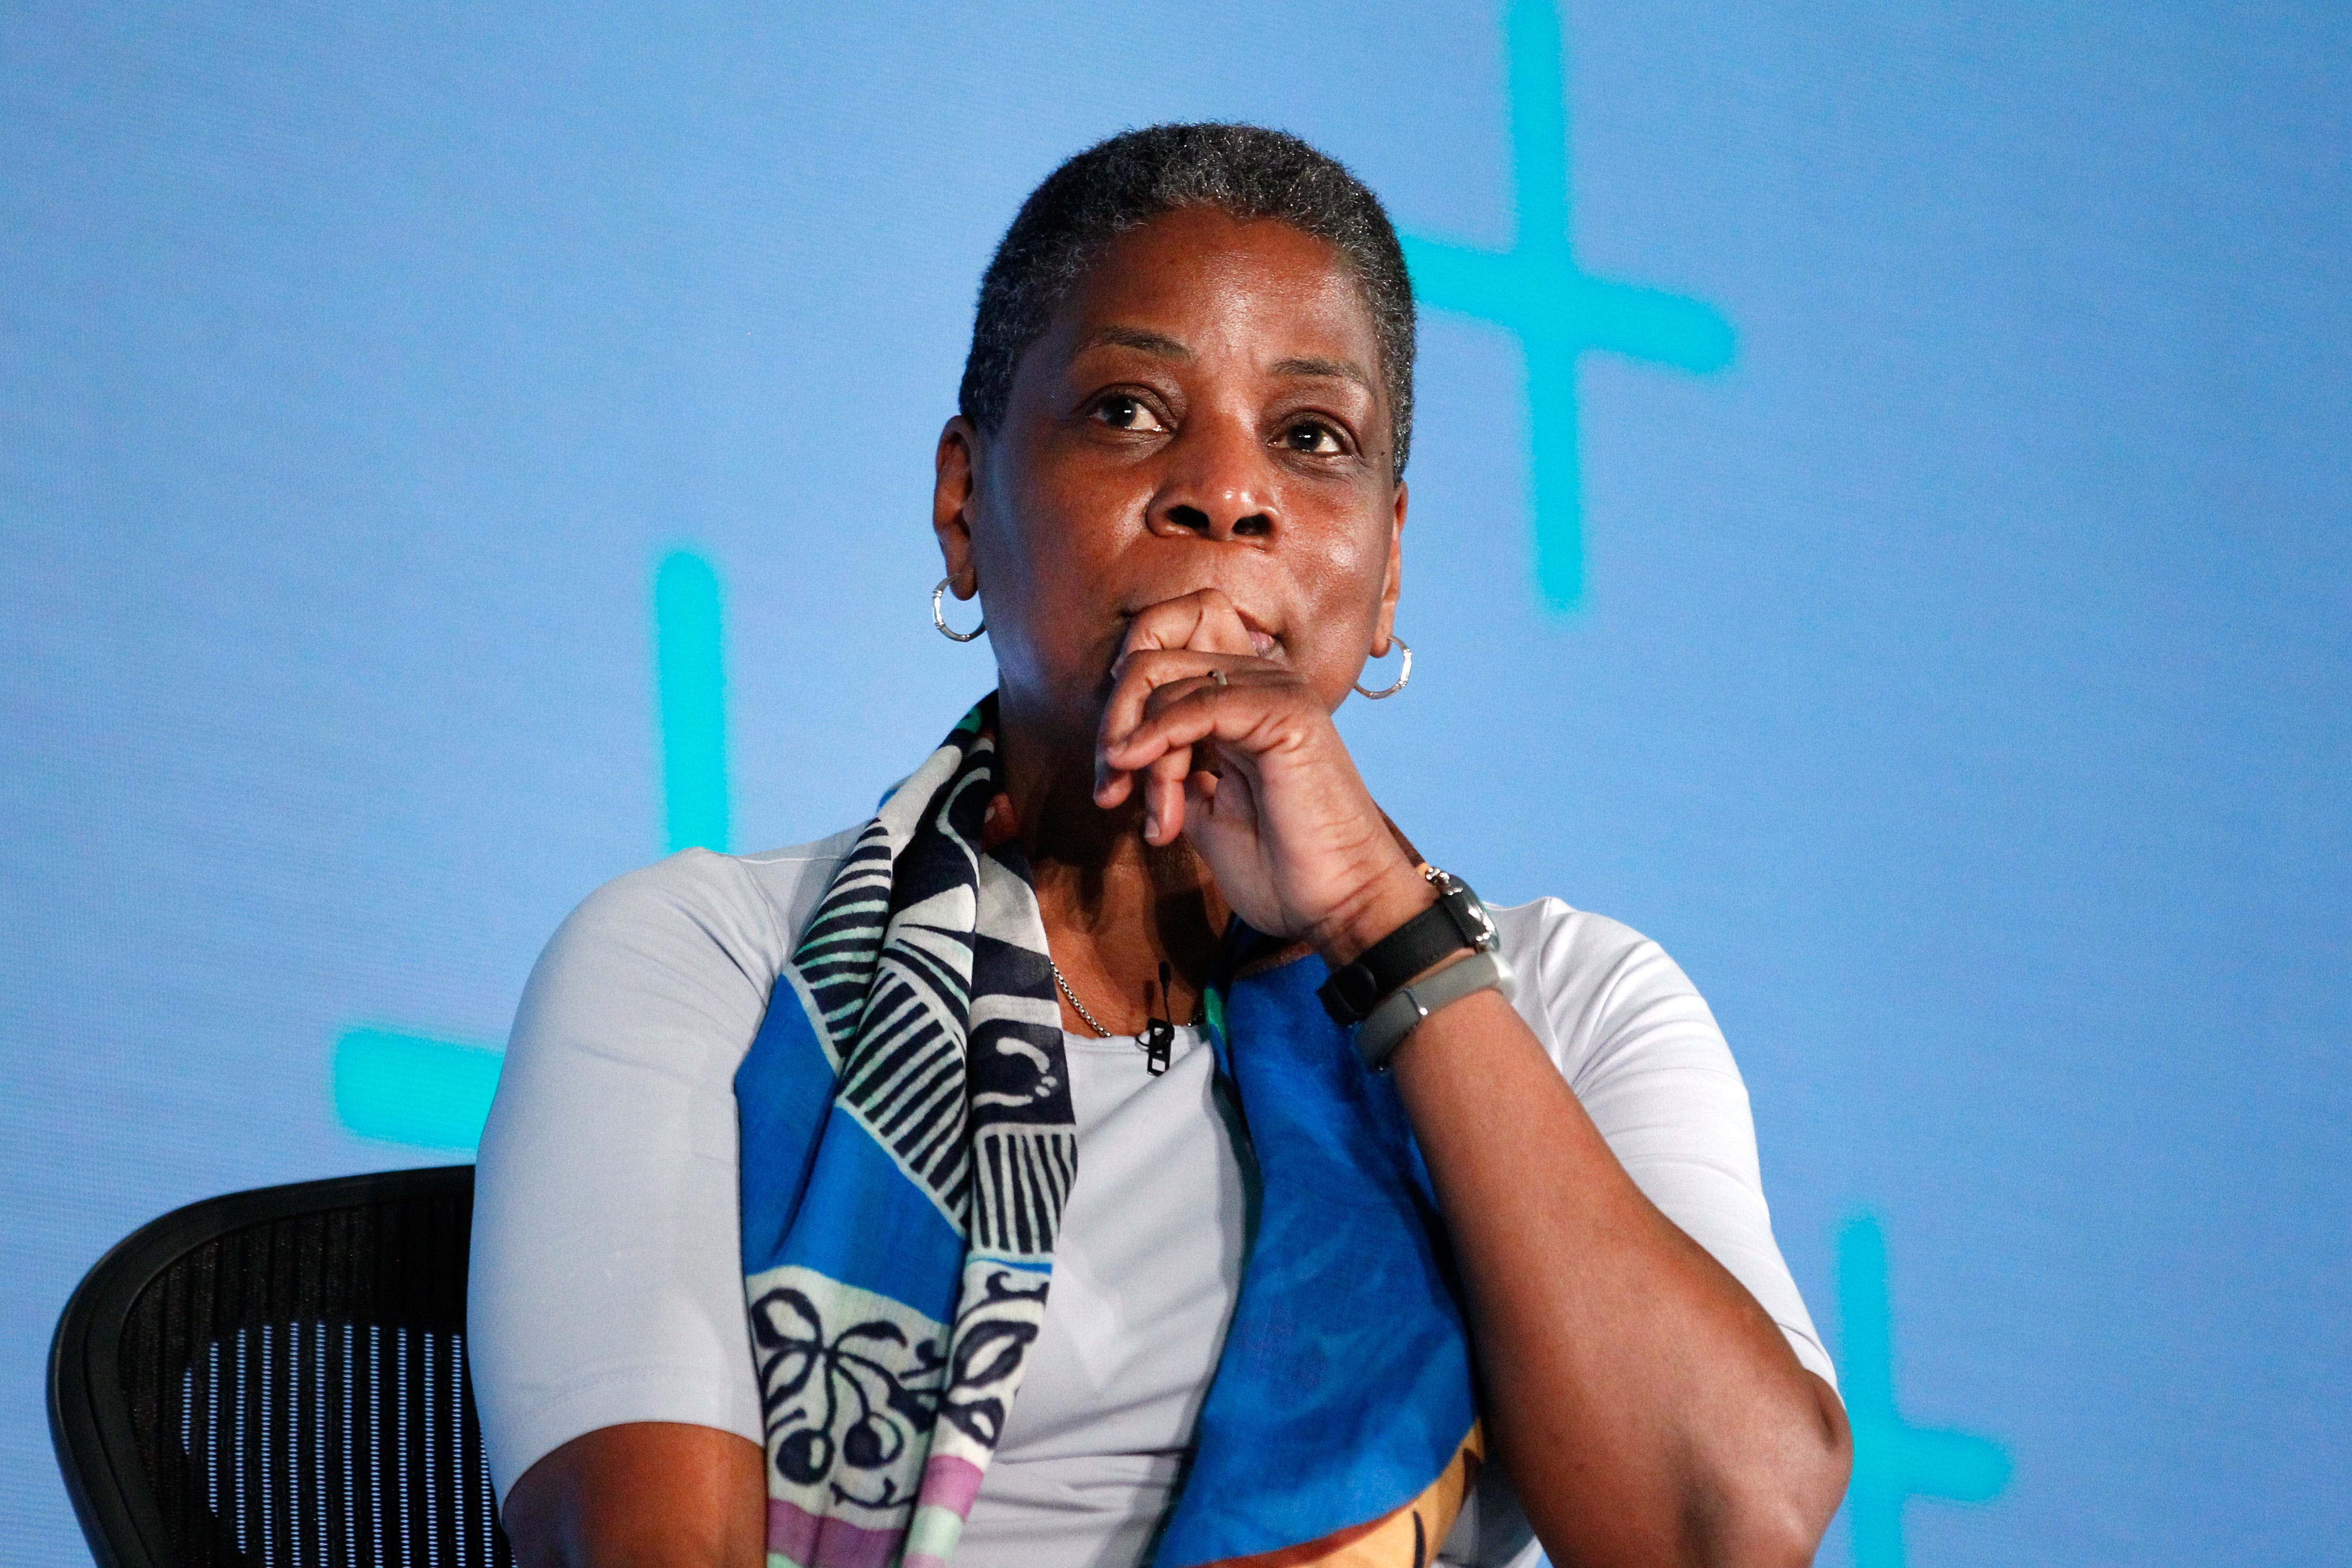 Ursula Burns, former chairman and CEO of Xerox, was the first Black woman CEO in the Fortune 500.